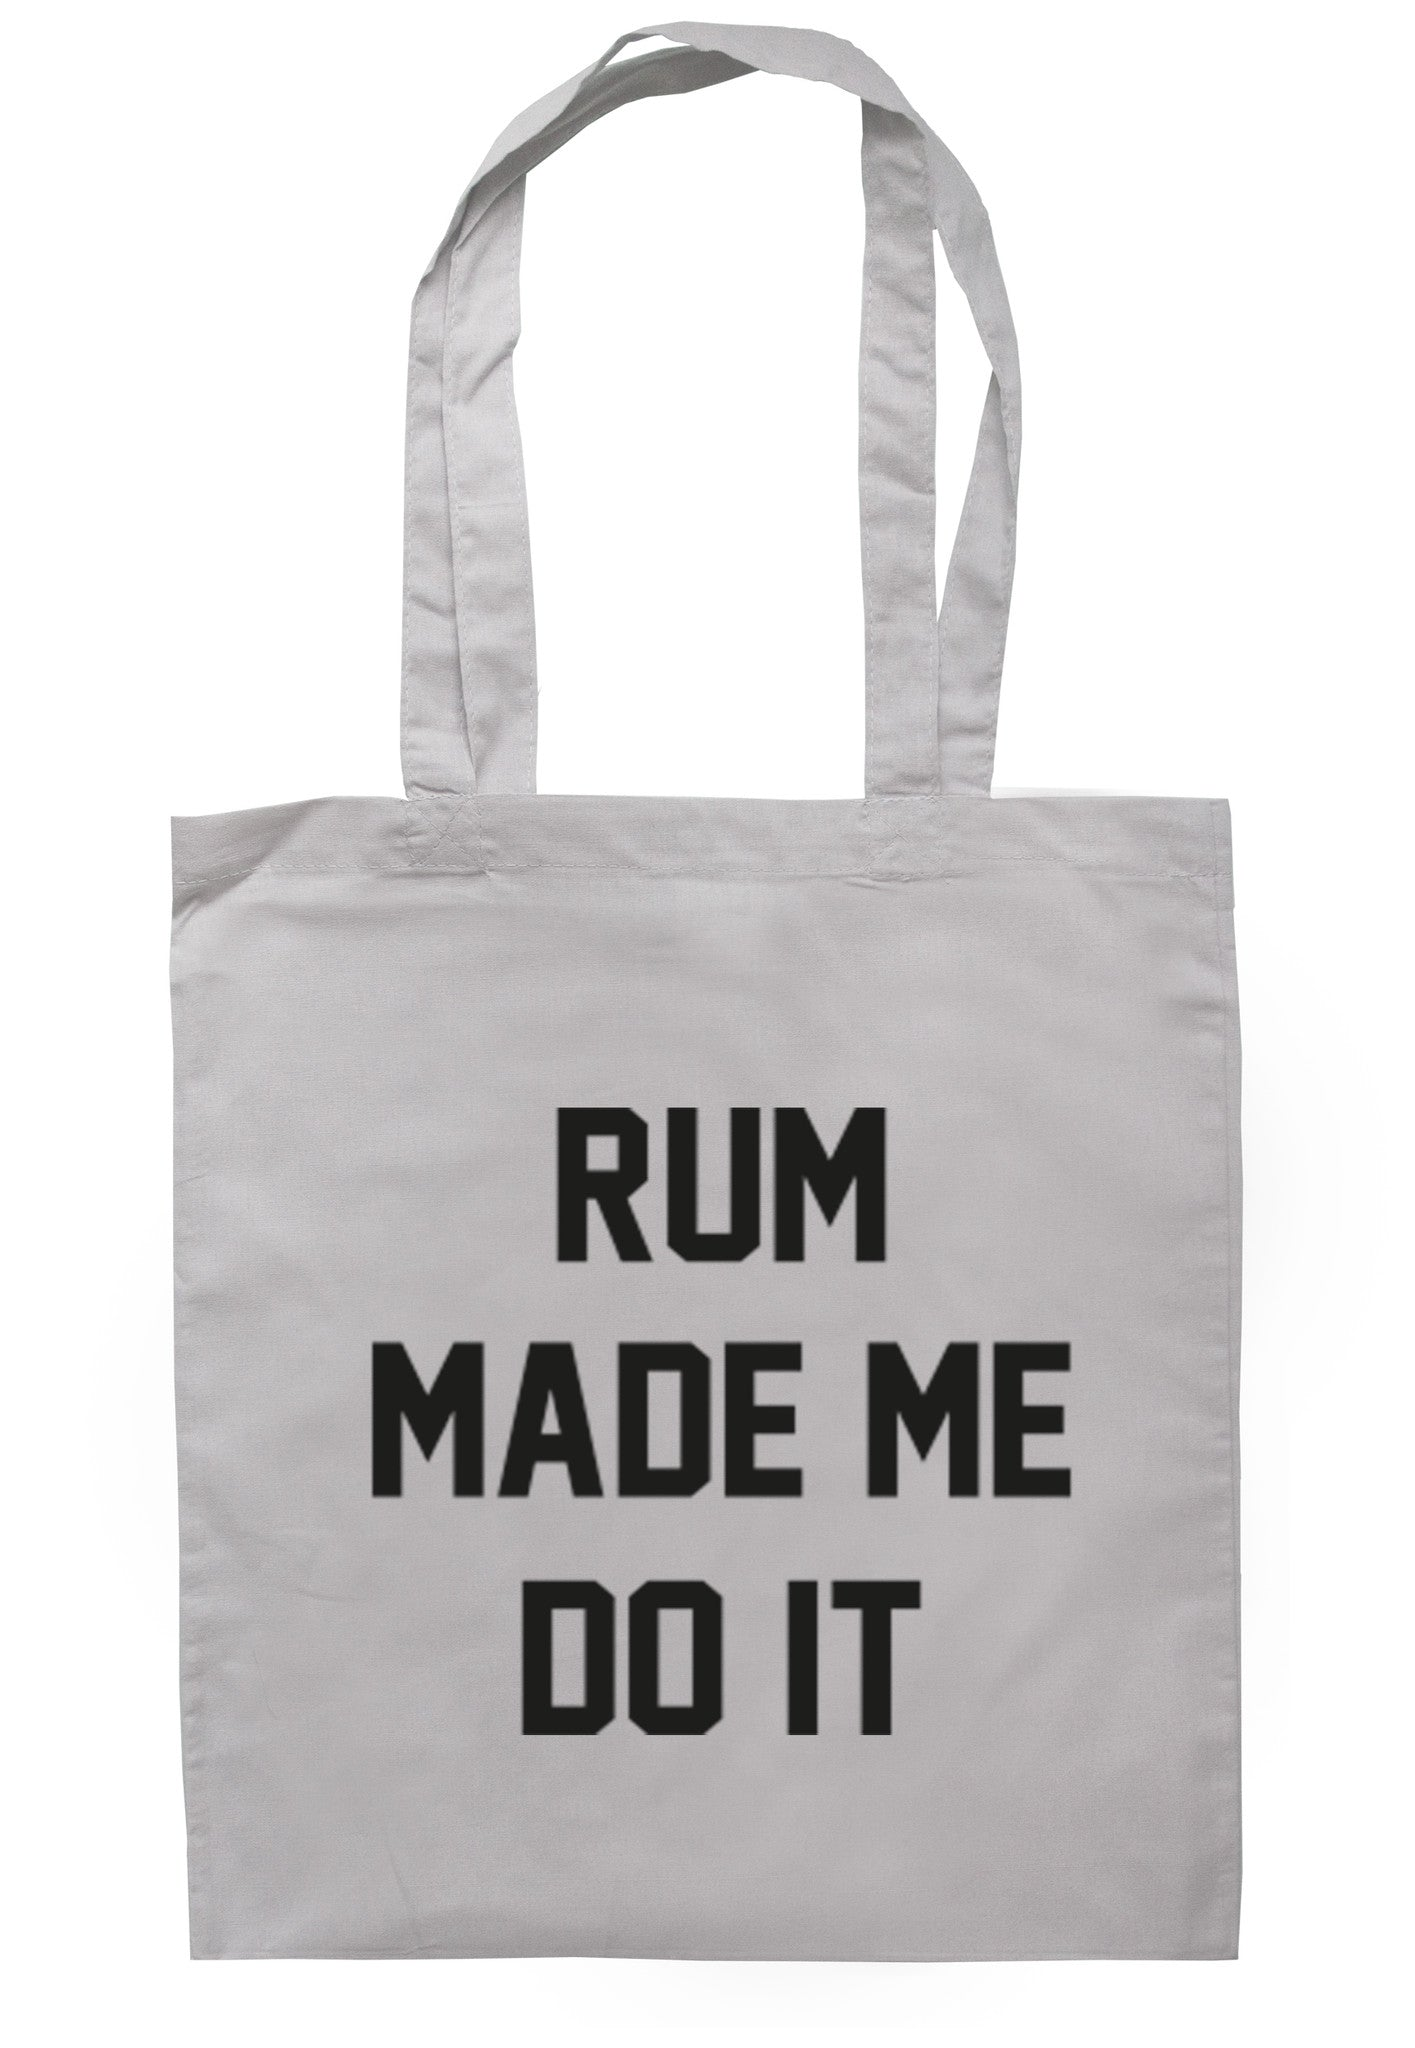 Rum Made Me Do It Tote Bag TB0020 - Illustrated Identity Ltd.